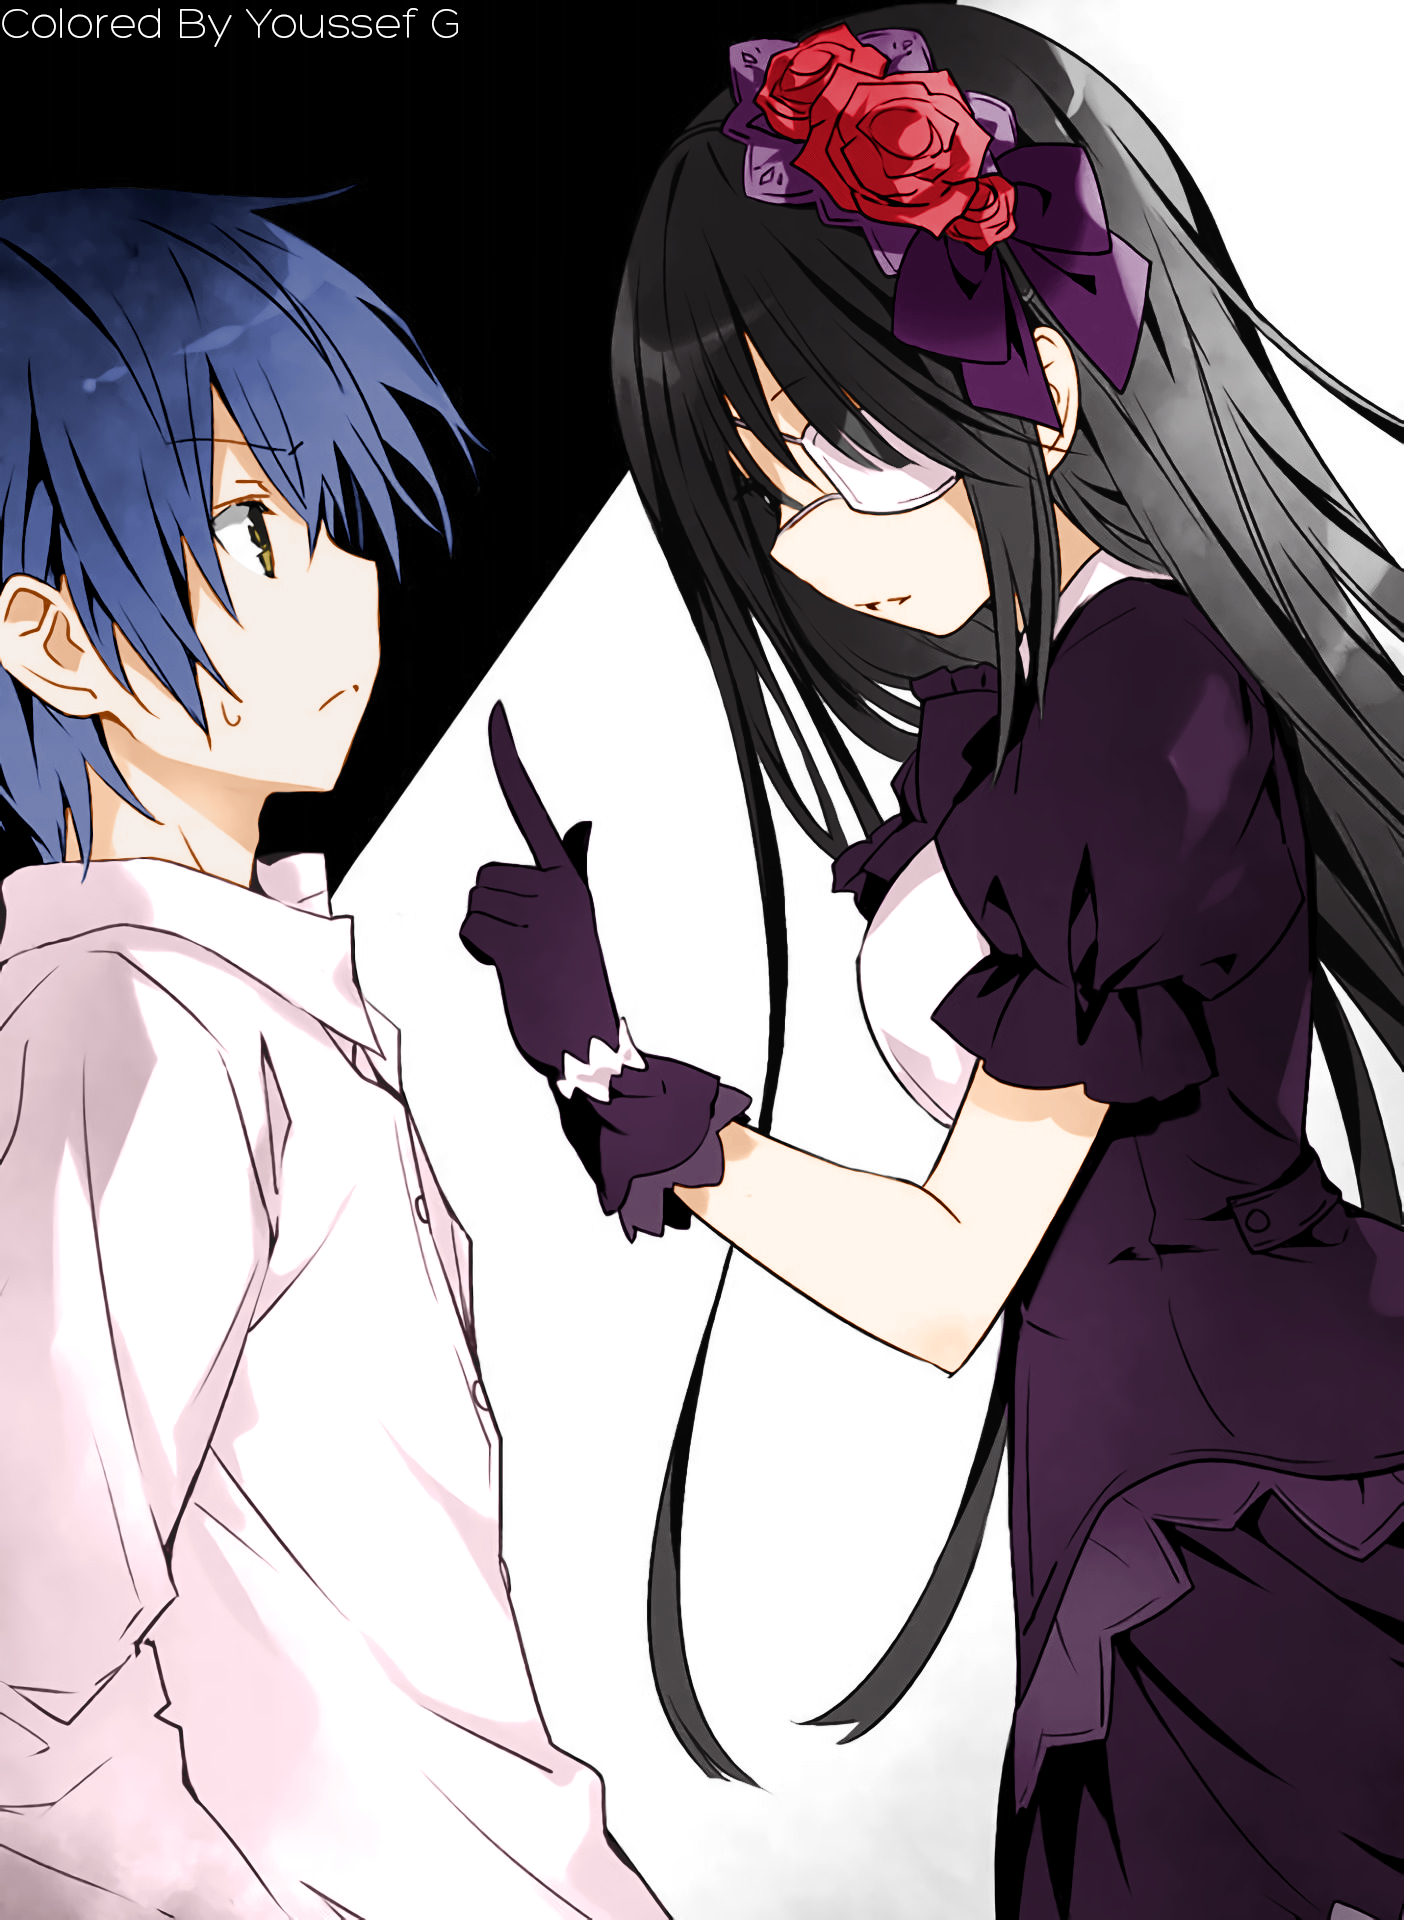 Itsuka Shido And Tokisaki Kurumi By Mundoanimere On Deviantart At myanimelist, you can find out about their voice actors, animeography, pictures and much more! itsuka shido and tokisaki kurumi by